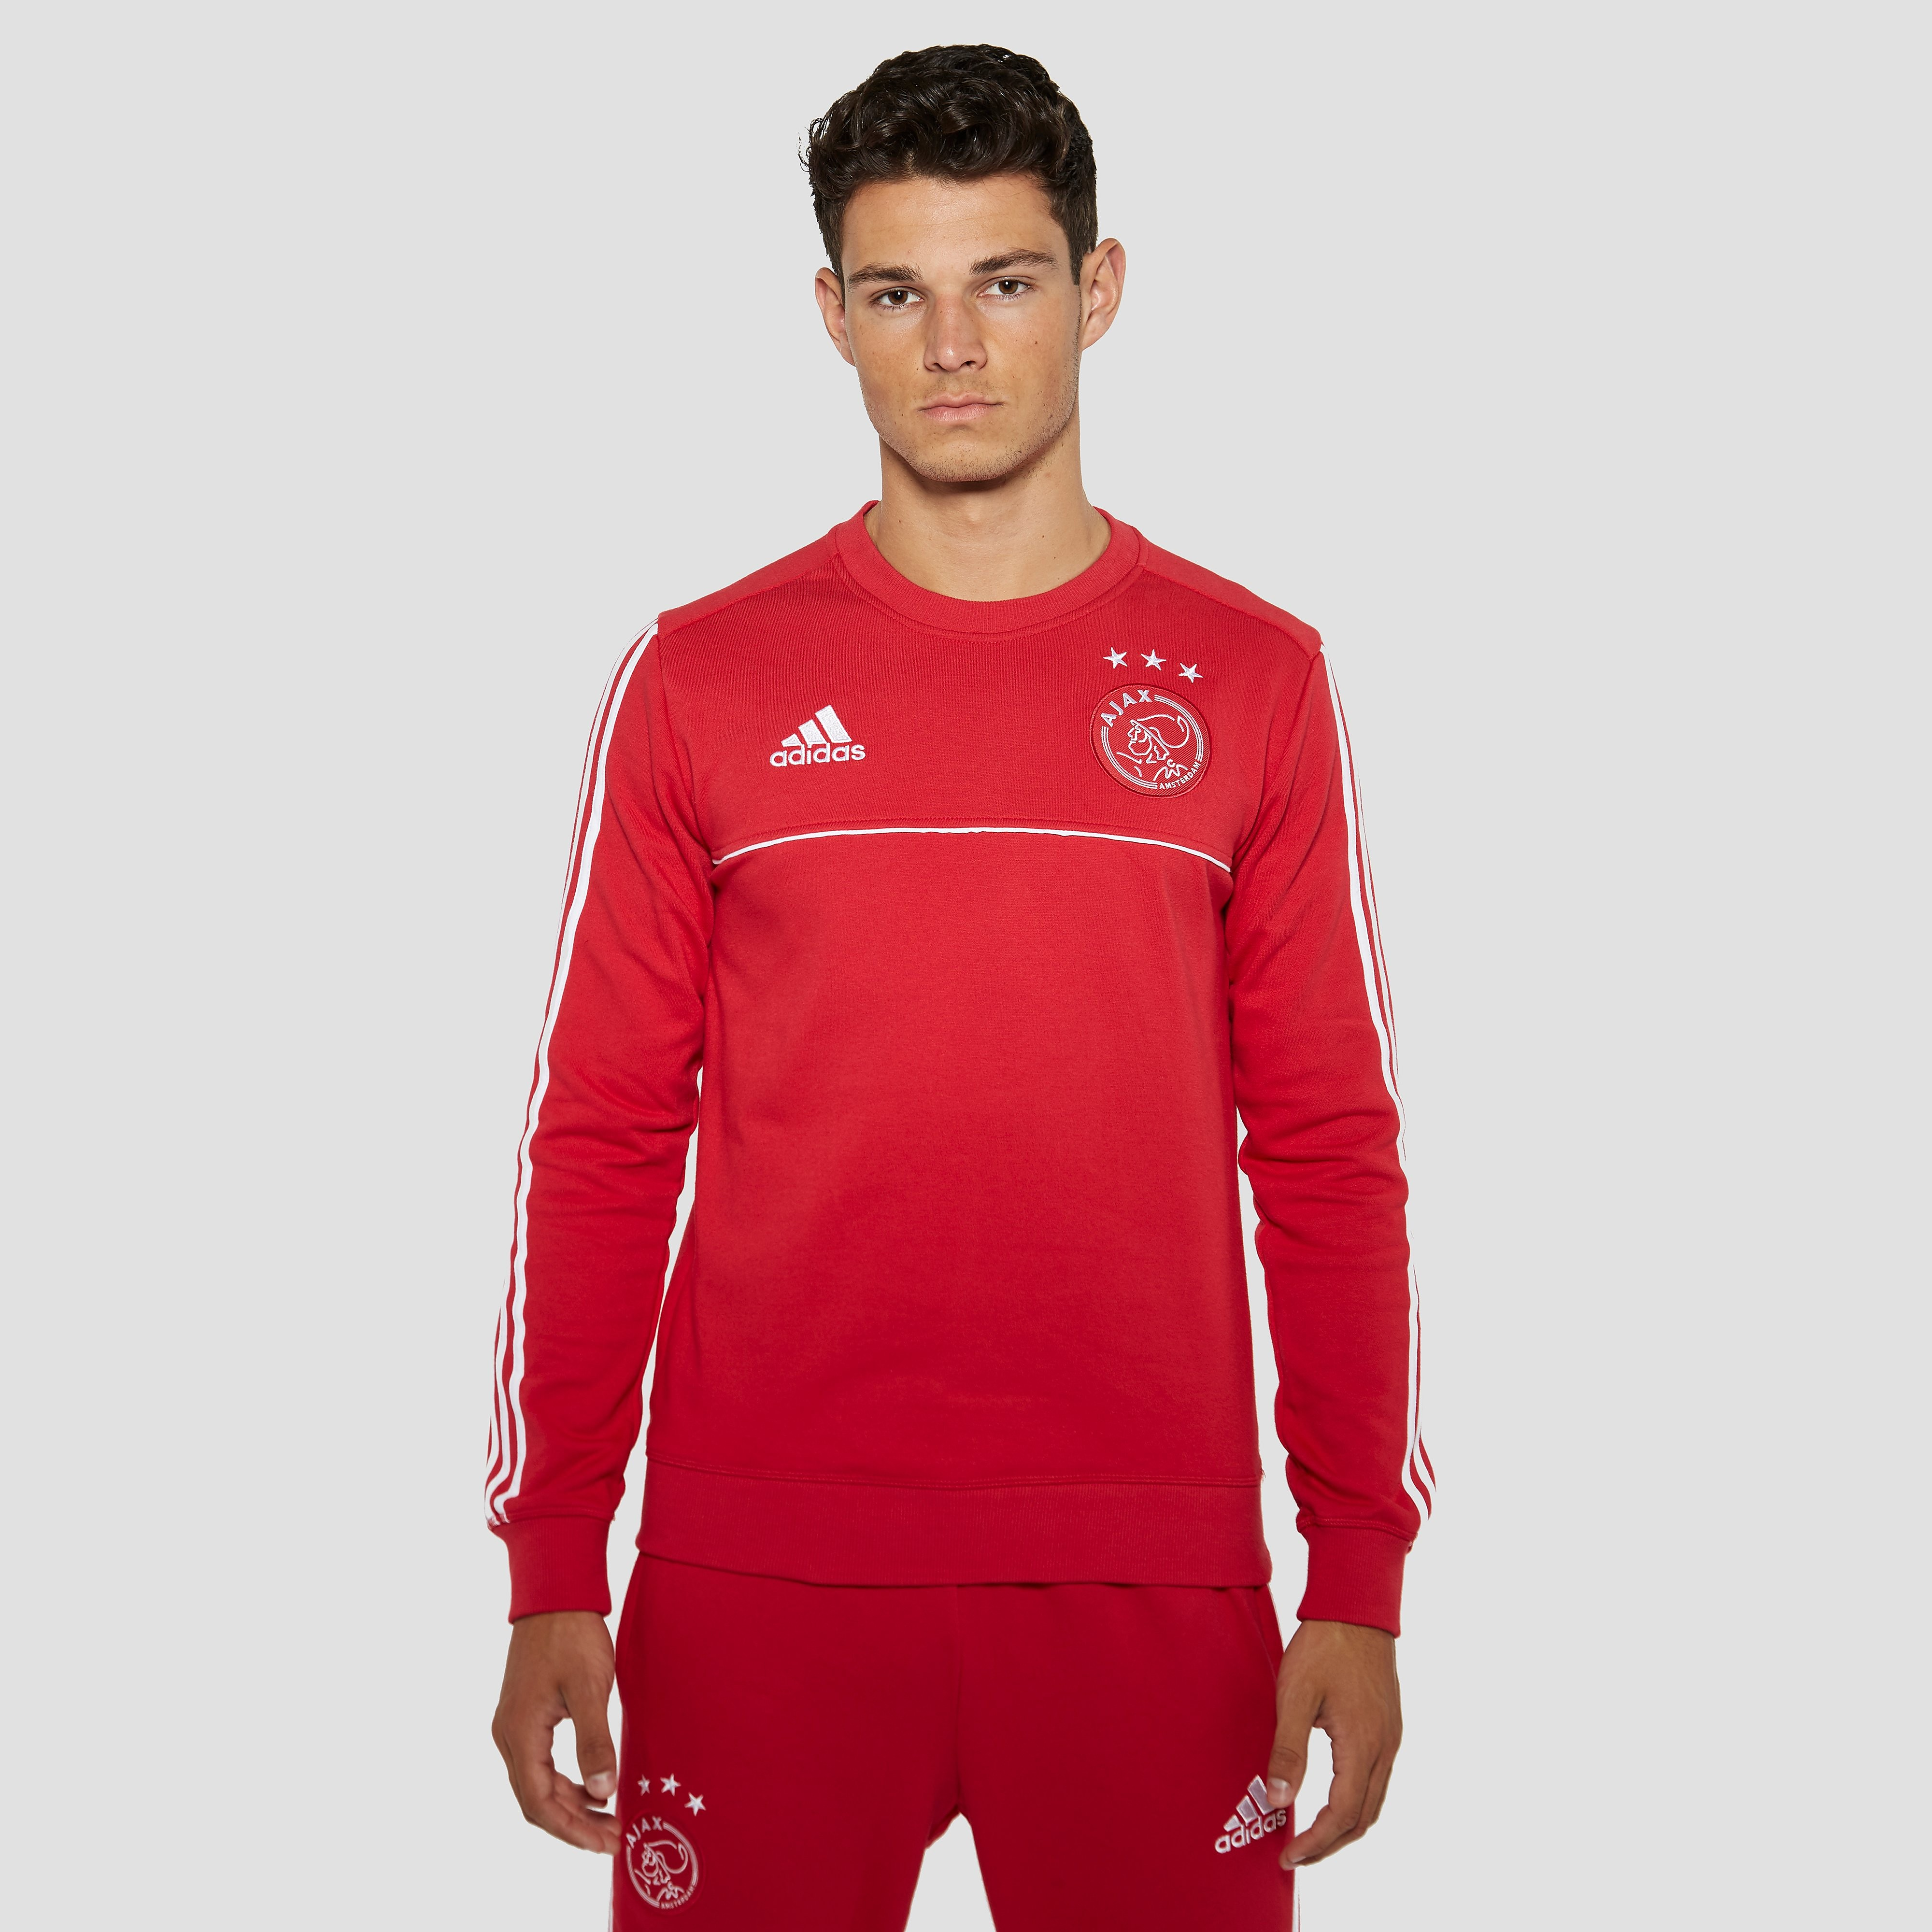 ADIDAS AJAX THUIS SWEATER ROOD/WIT HEREN